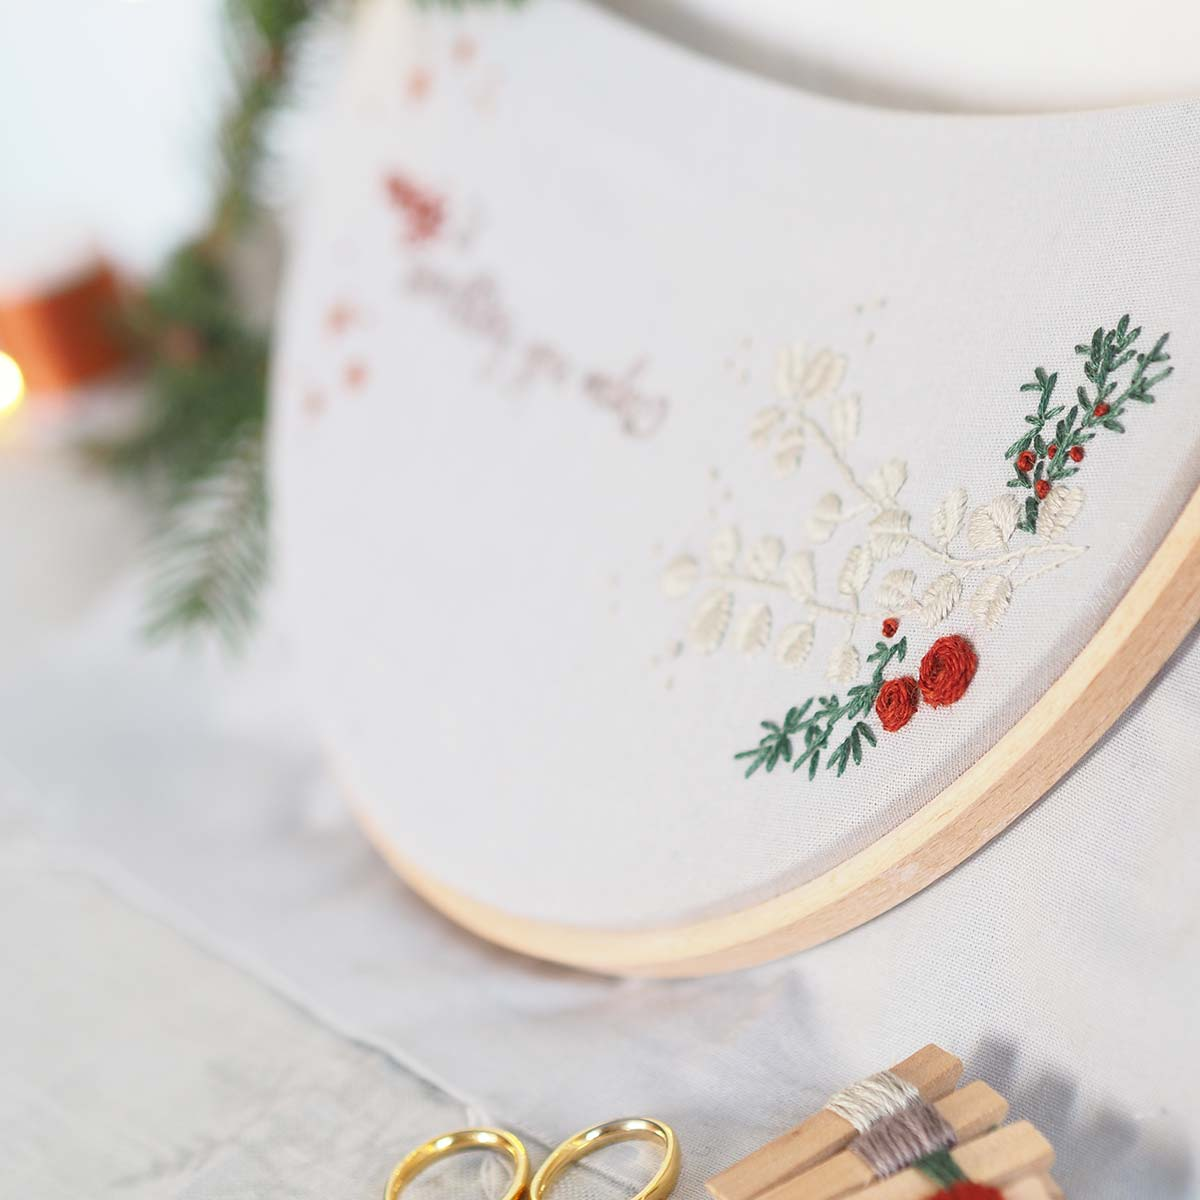 broderie-hiver-automne-branches-sapin-rose-laboutiquedemelimelo